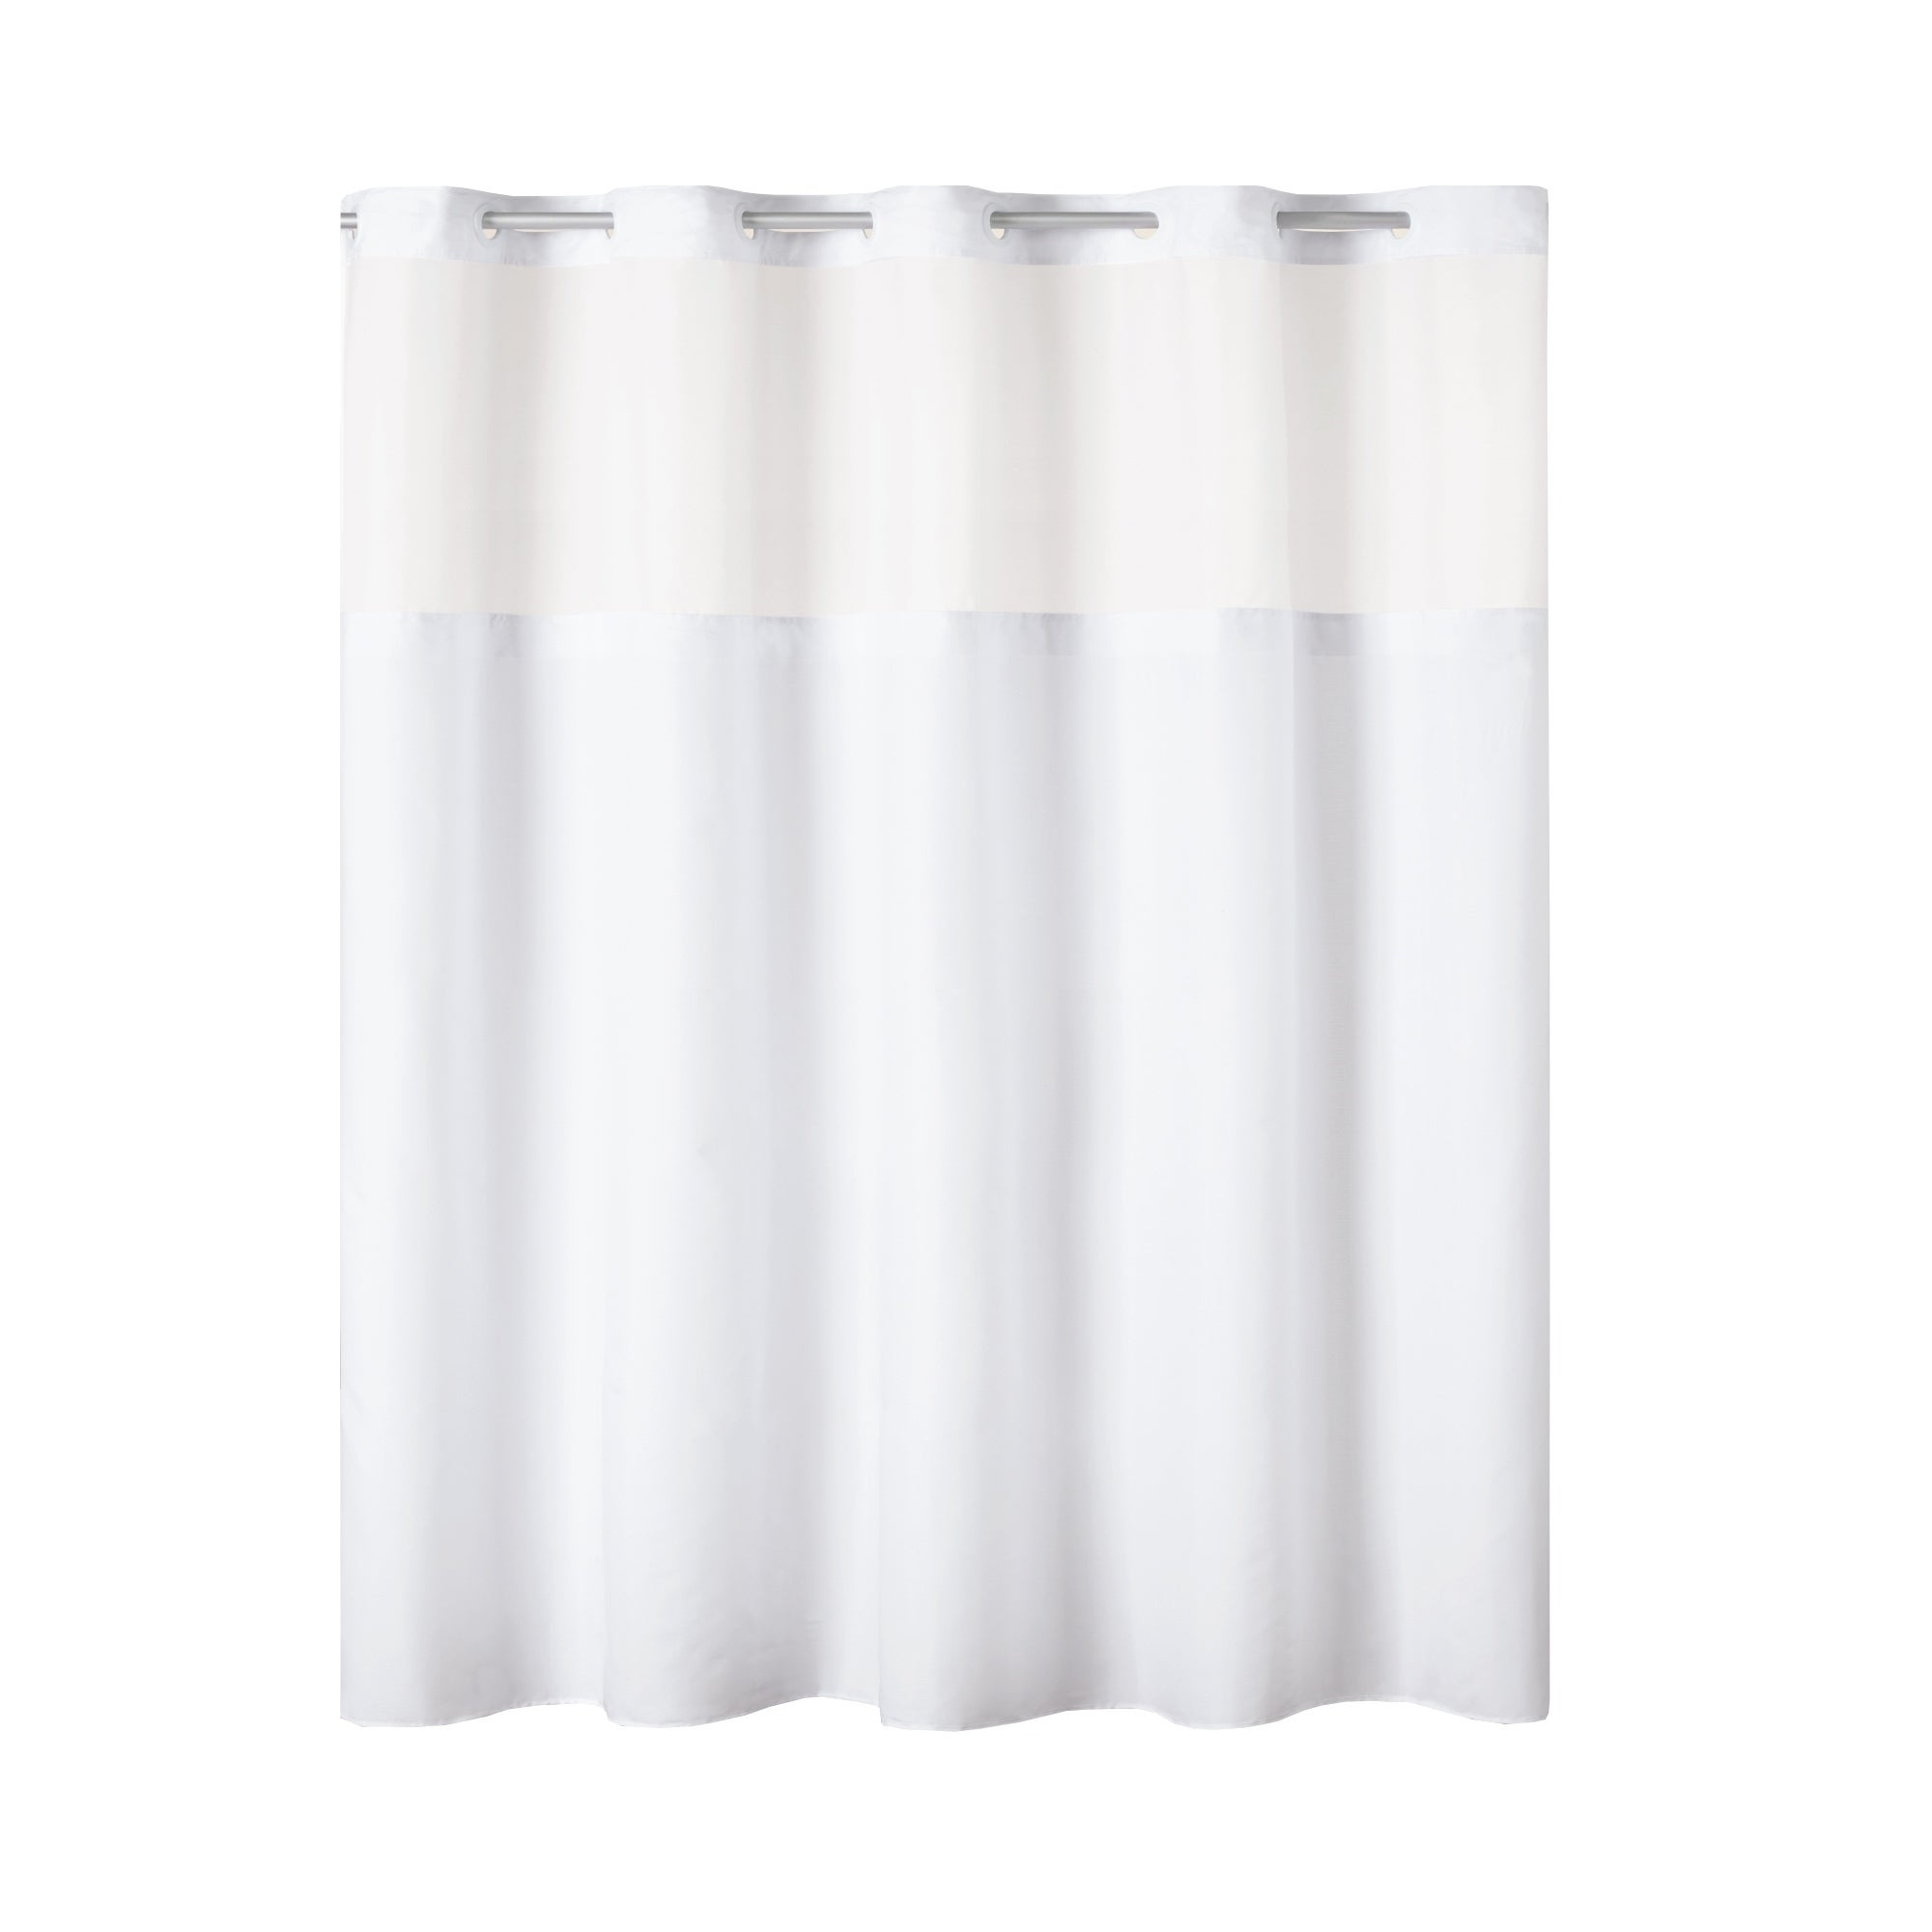 Hookless Snap In Fabric Liner for Shower Curtains White Polyester Machine Wash